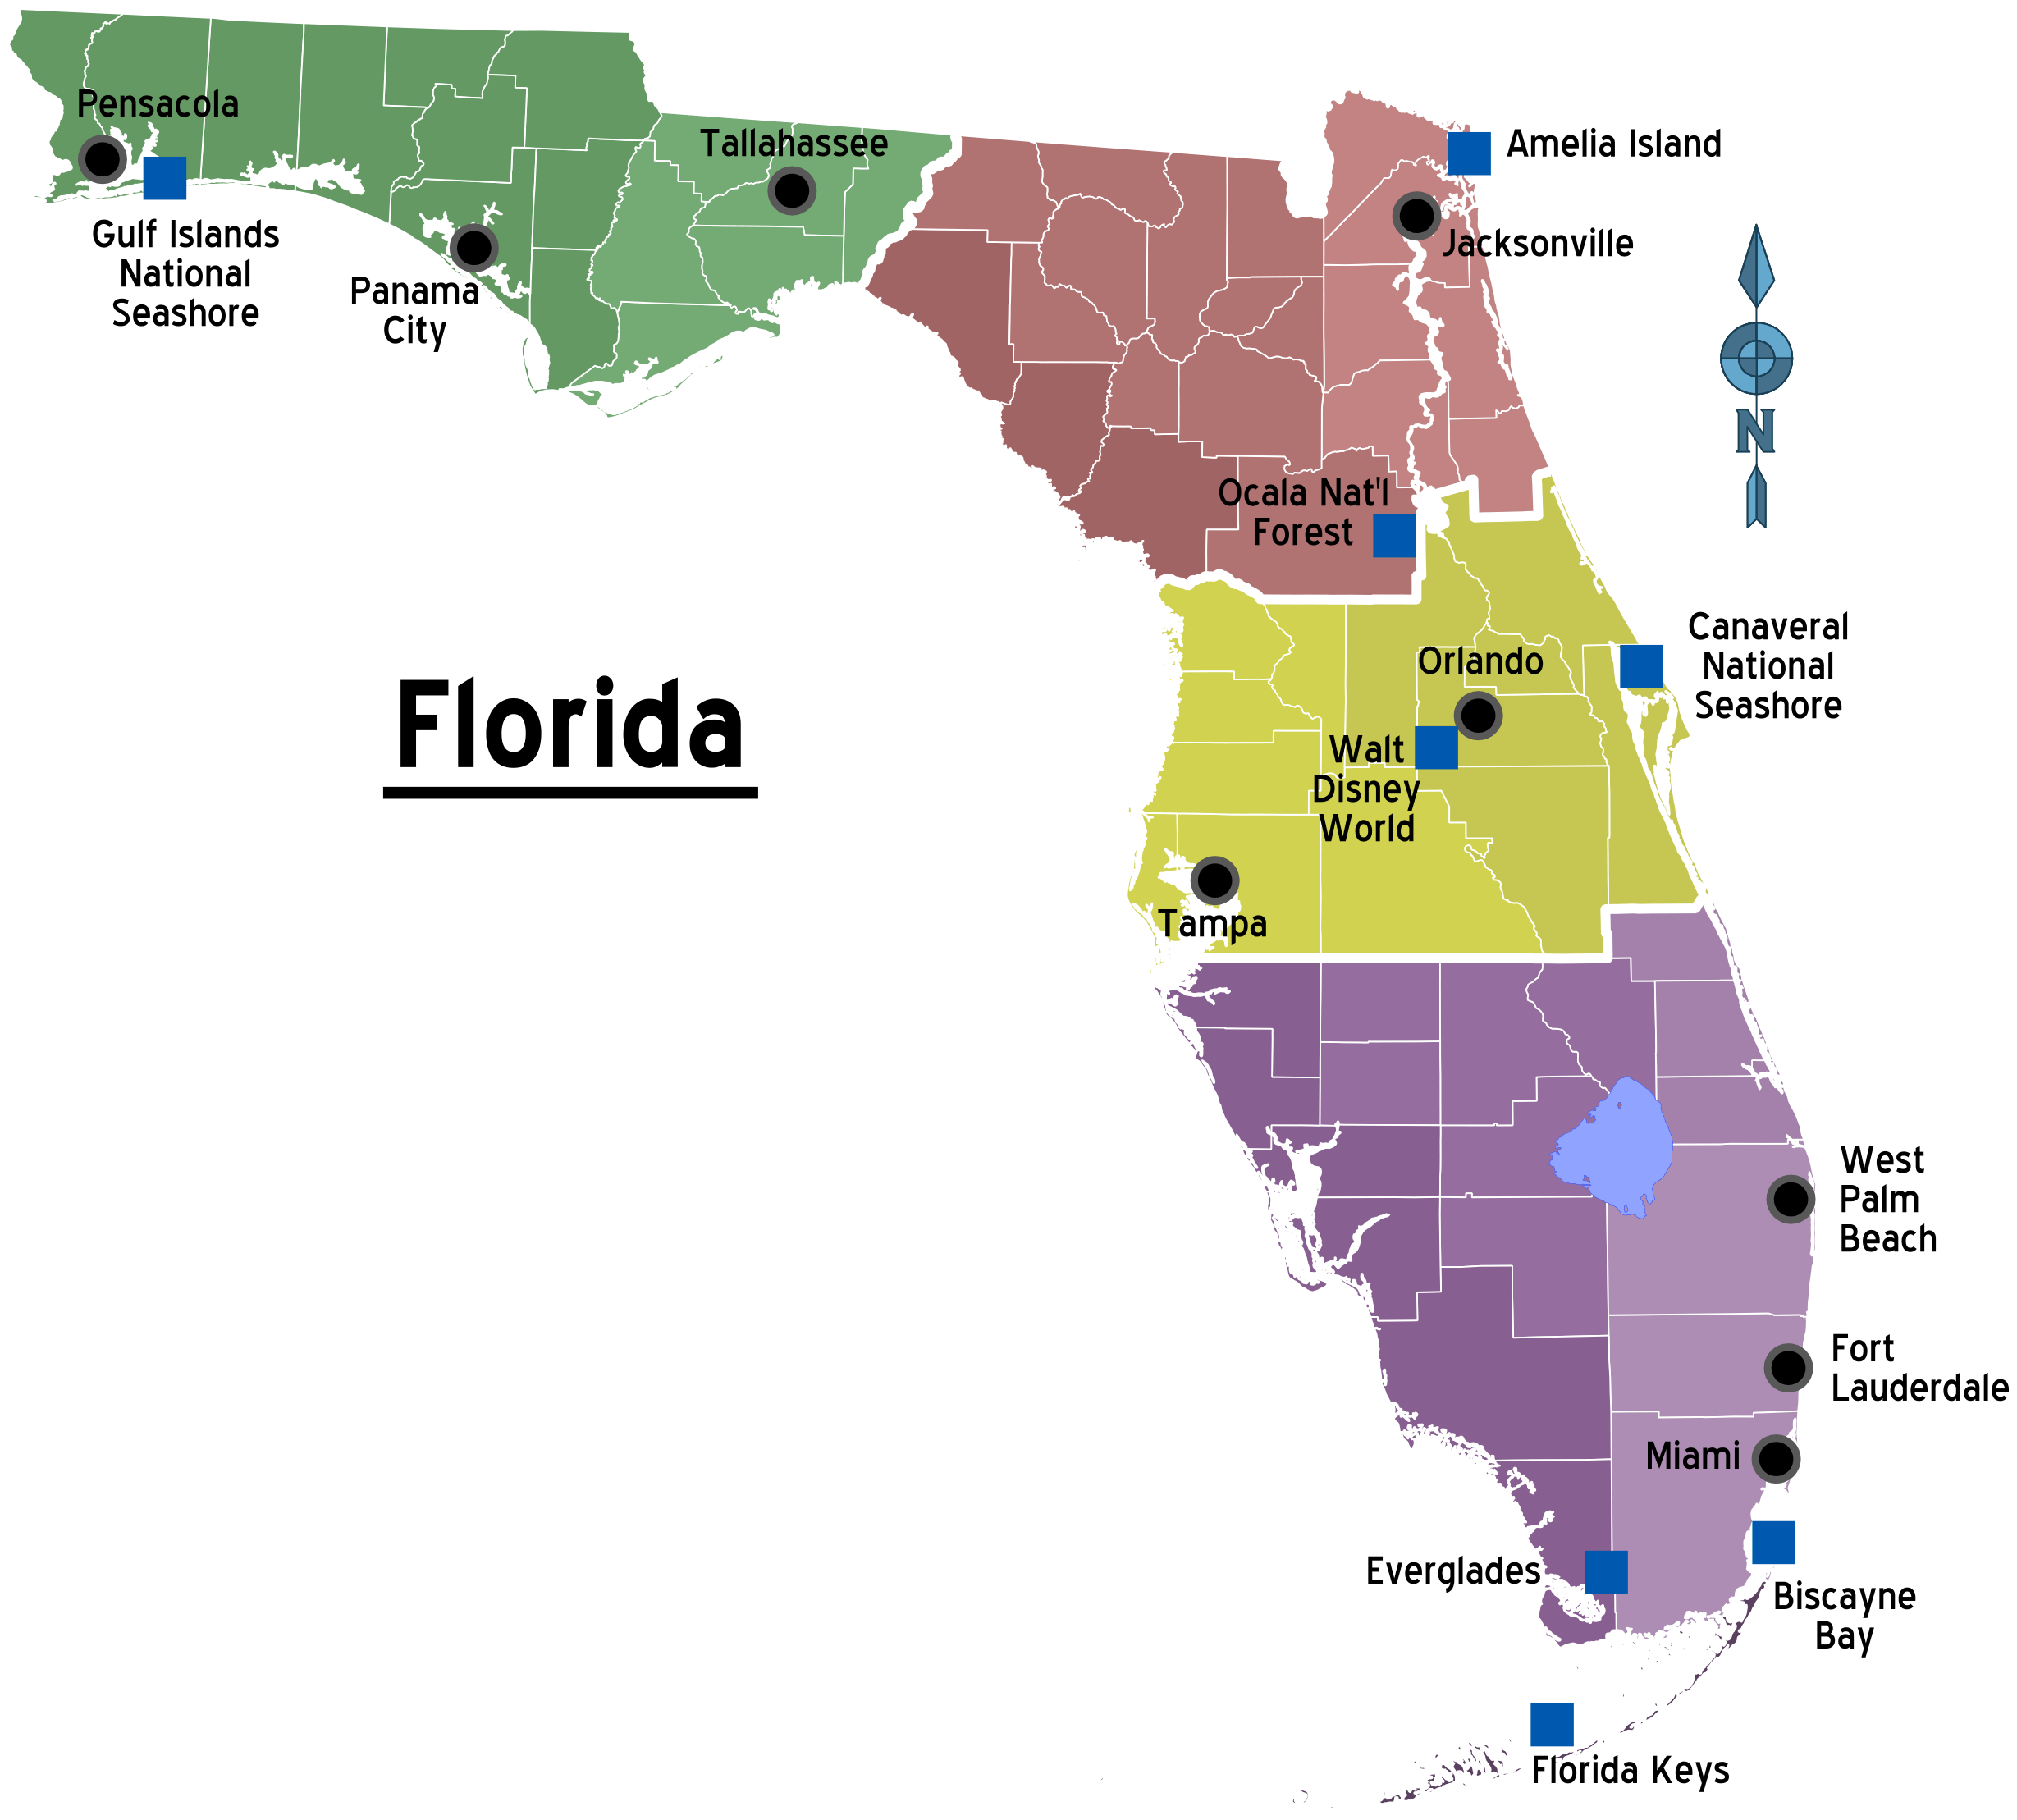 Florida Regions Map With Cities Mapsofnet - Fl map with counties and cities